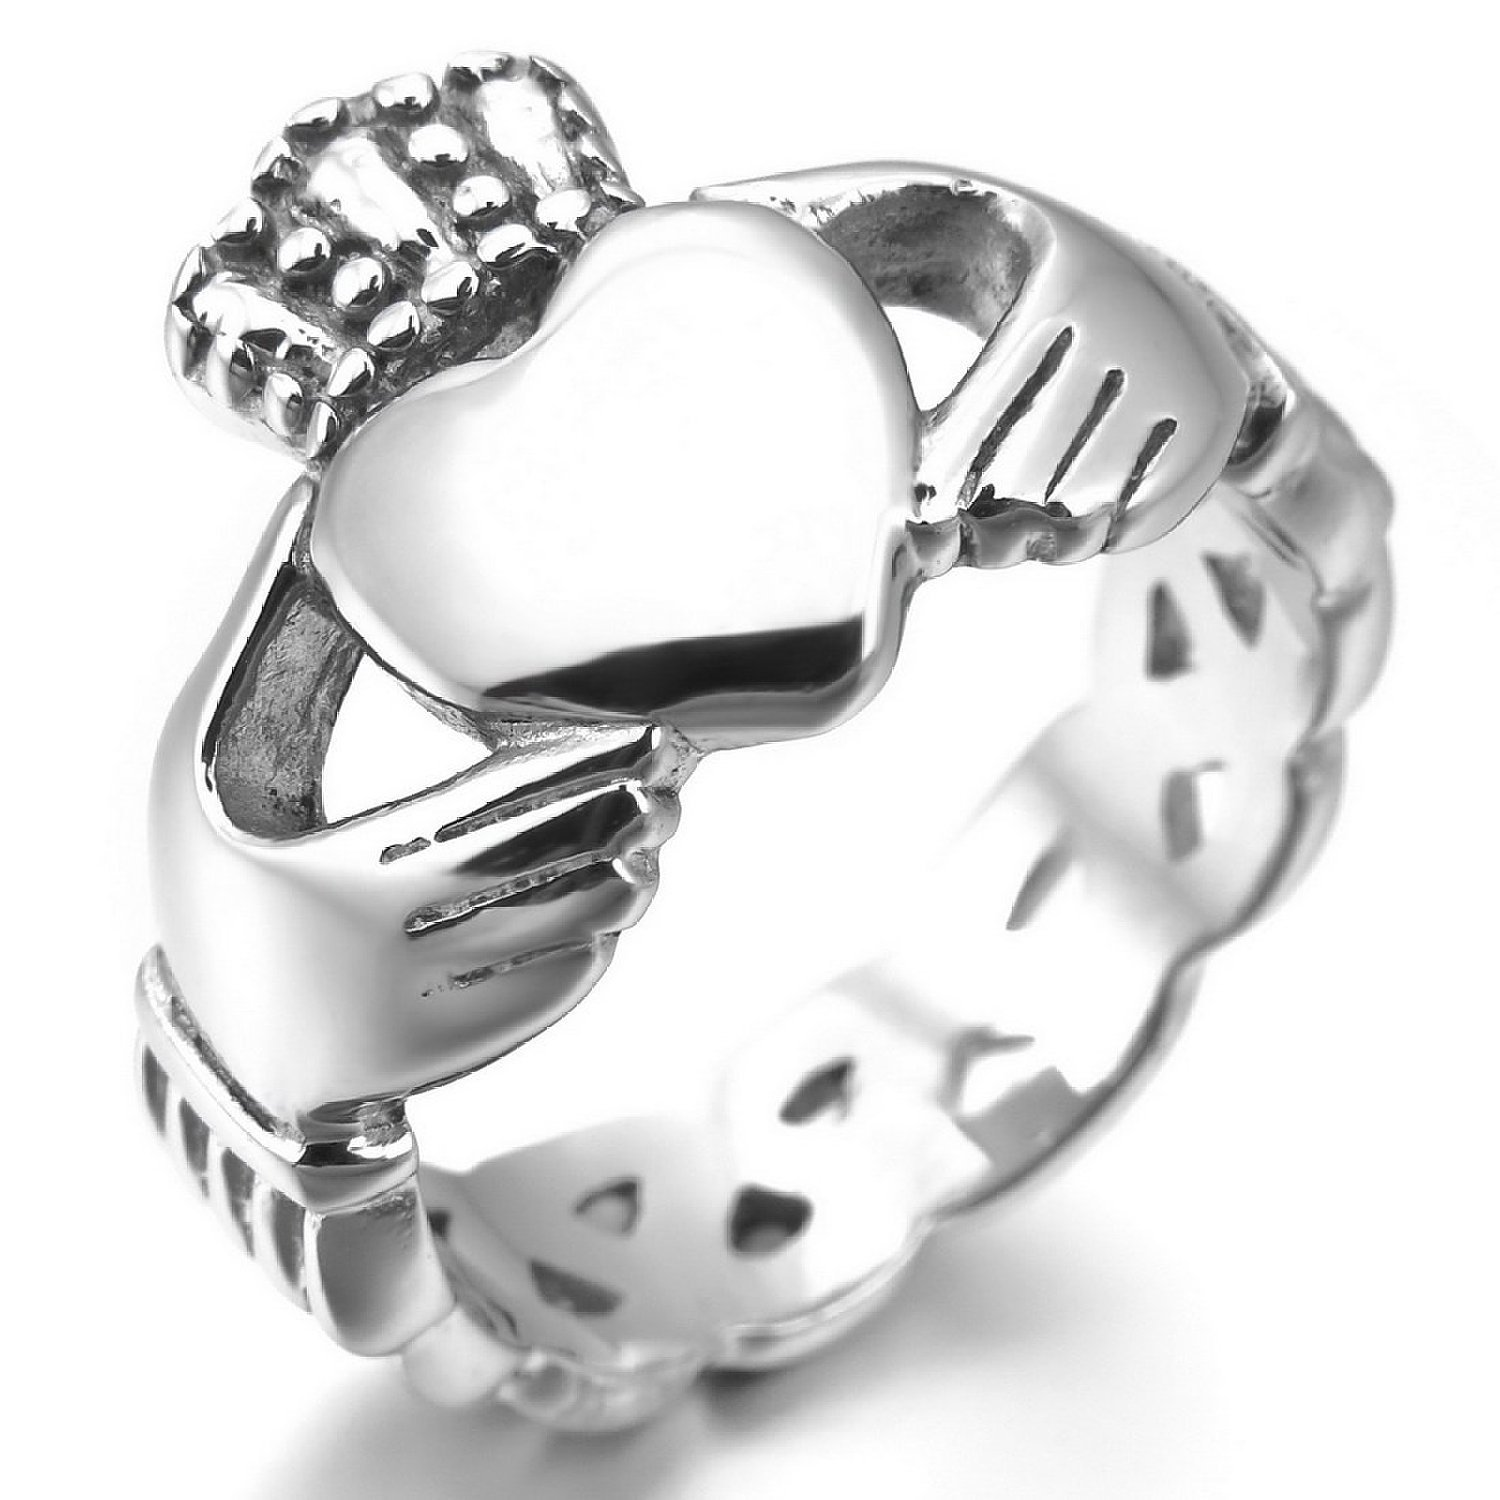 size finke ring full tropicaltanning info celtic gaelic by wedding with best sebastian rings view